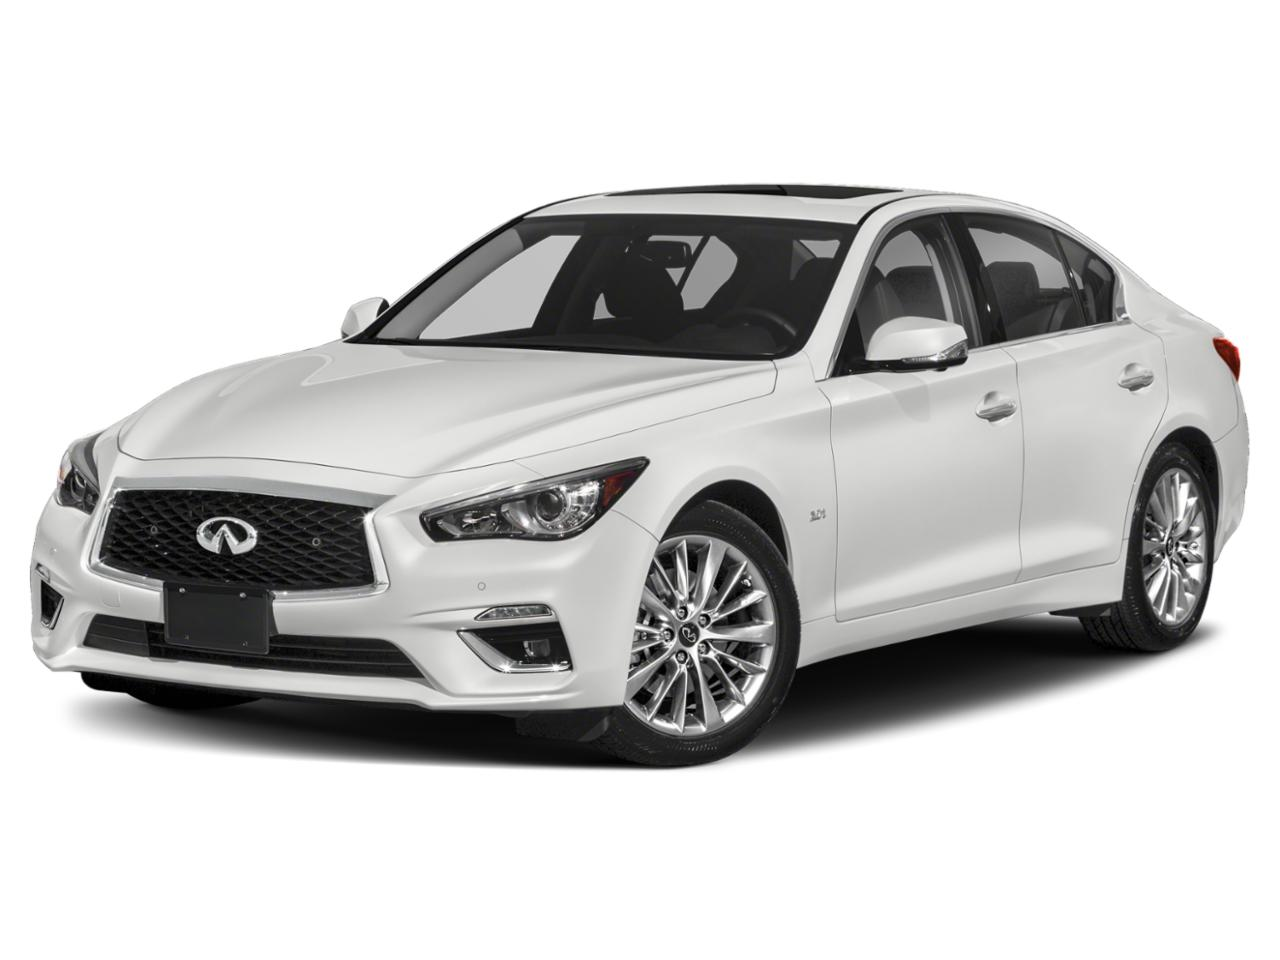 2021 INFINITI Q50 Vehicle Photo in Grapevine, TX 76051